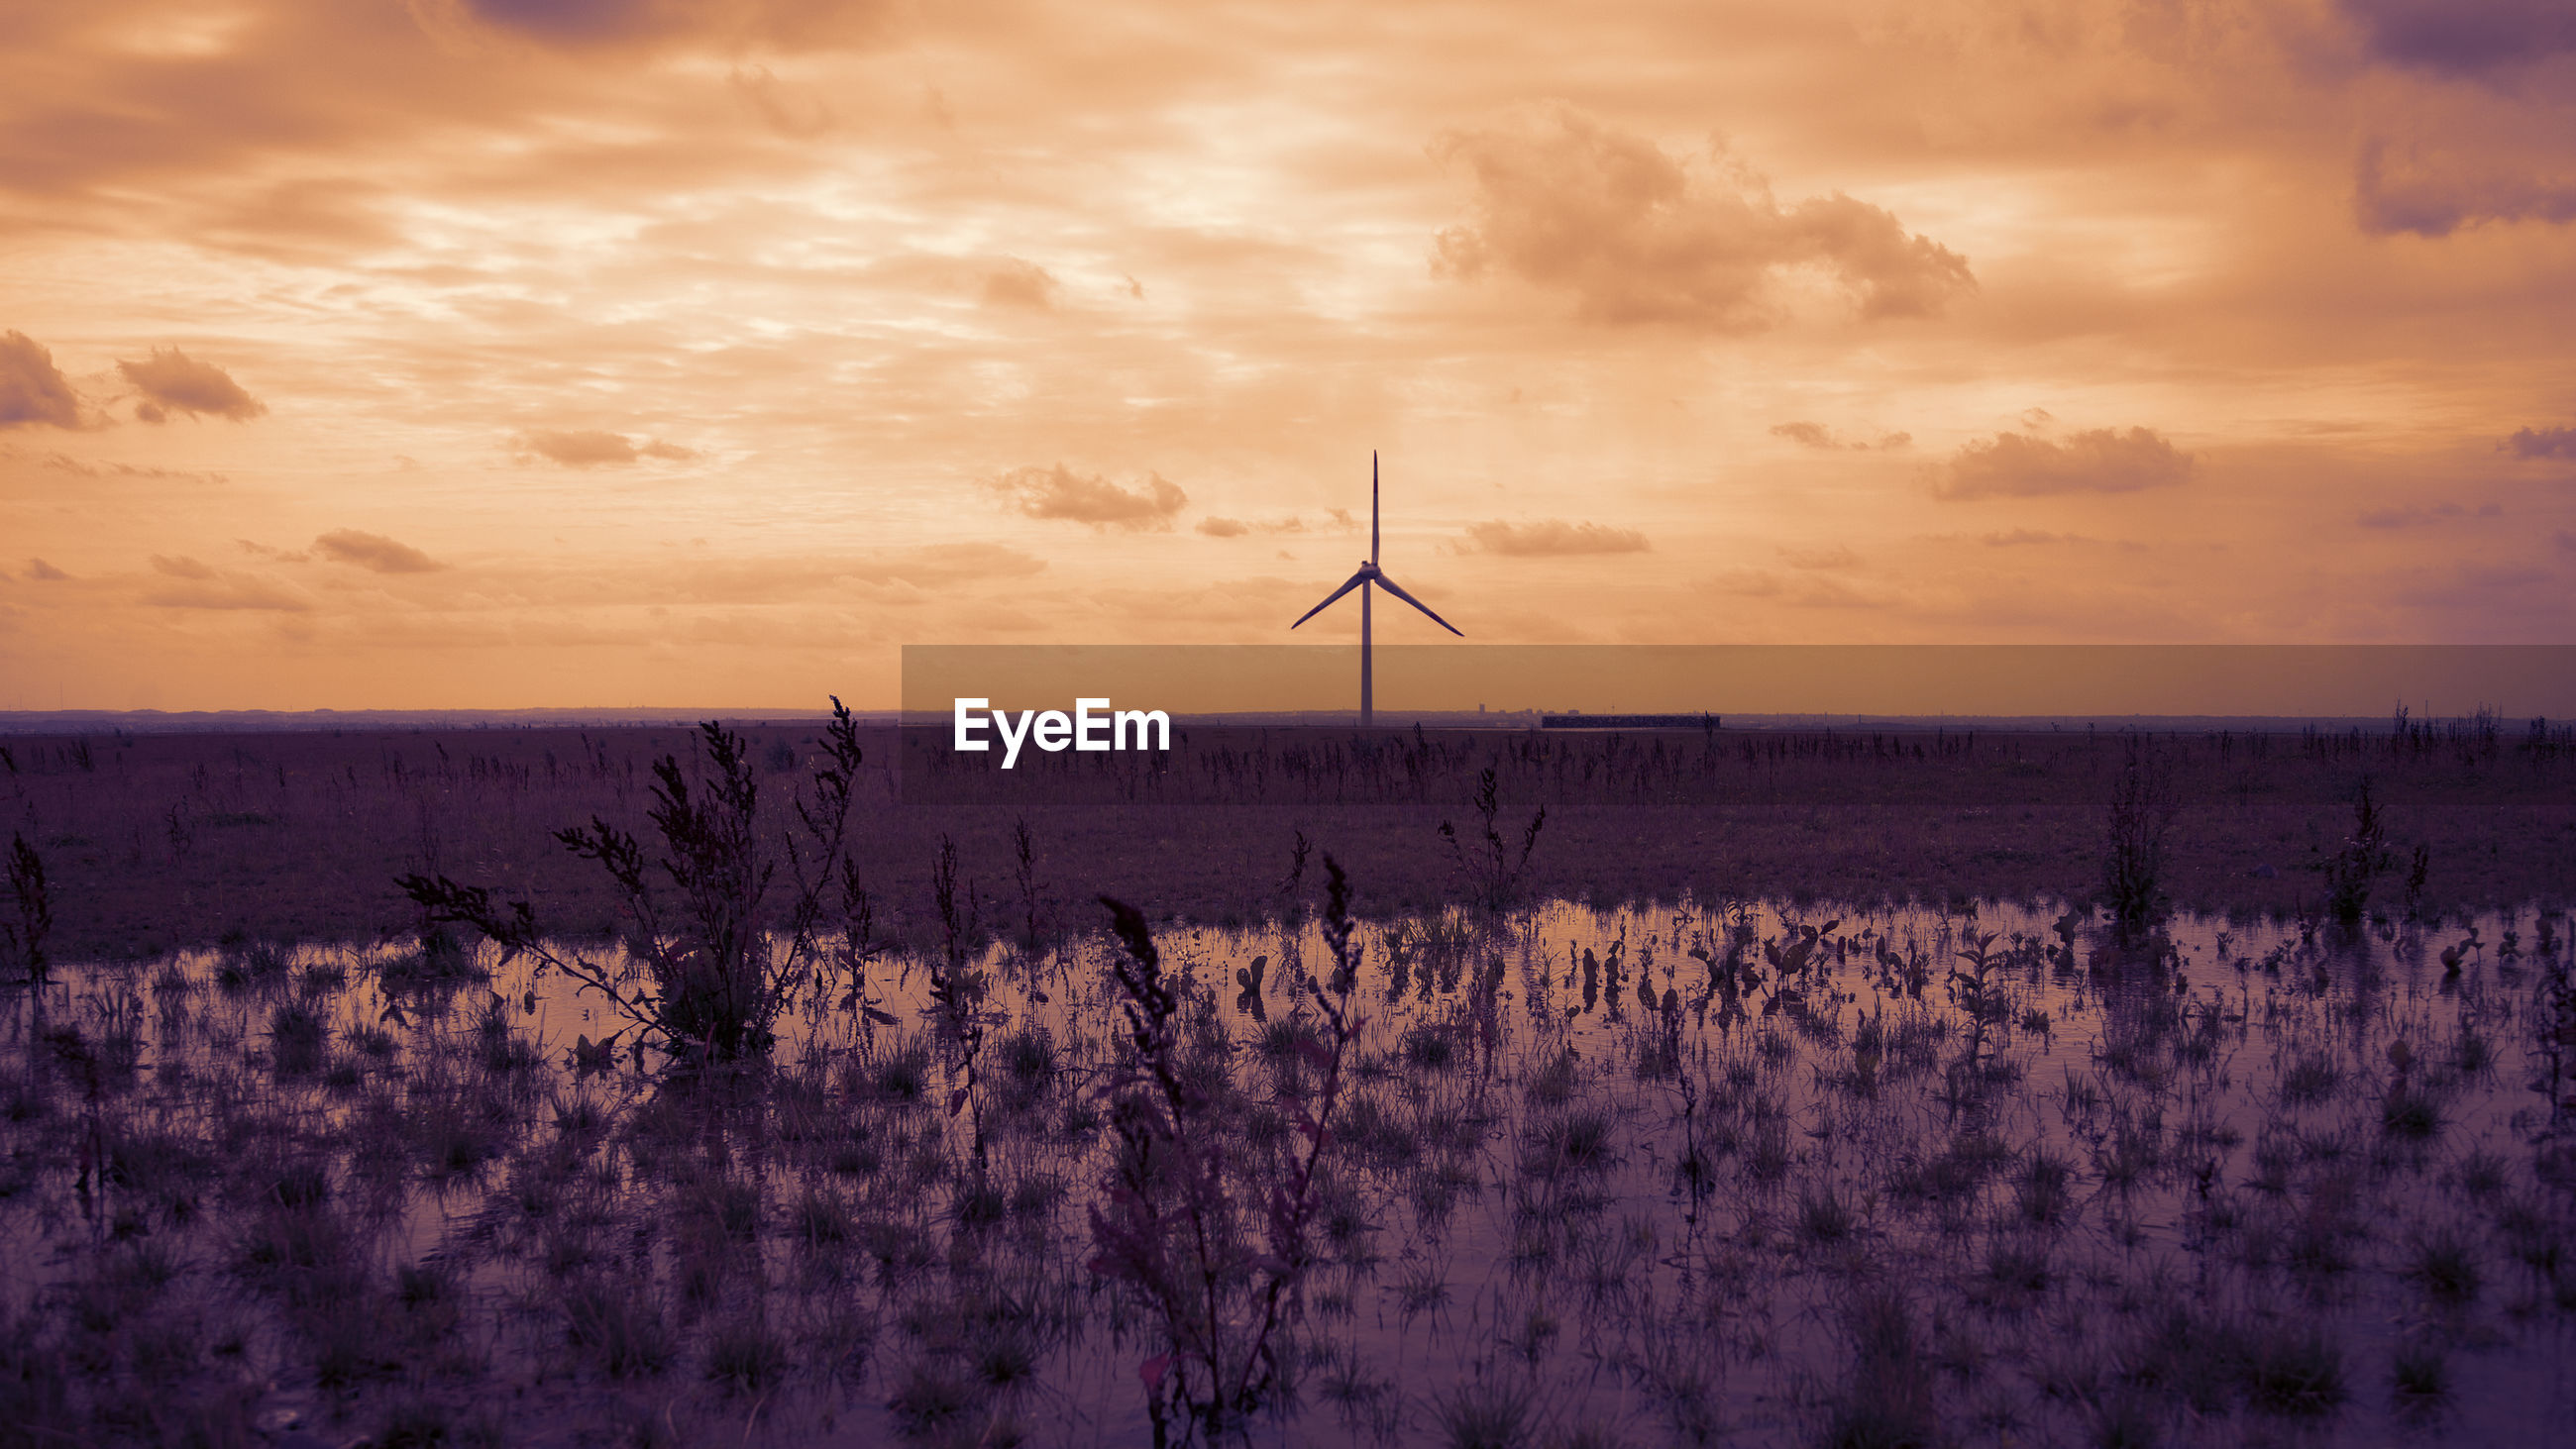 VIEW OF WIND TURBINES ON FIELD AGAINST SKY